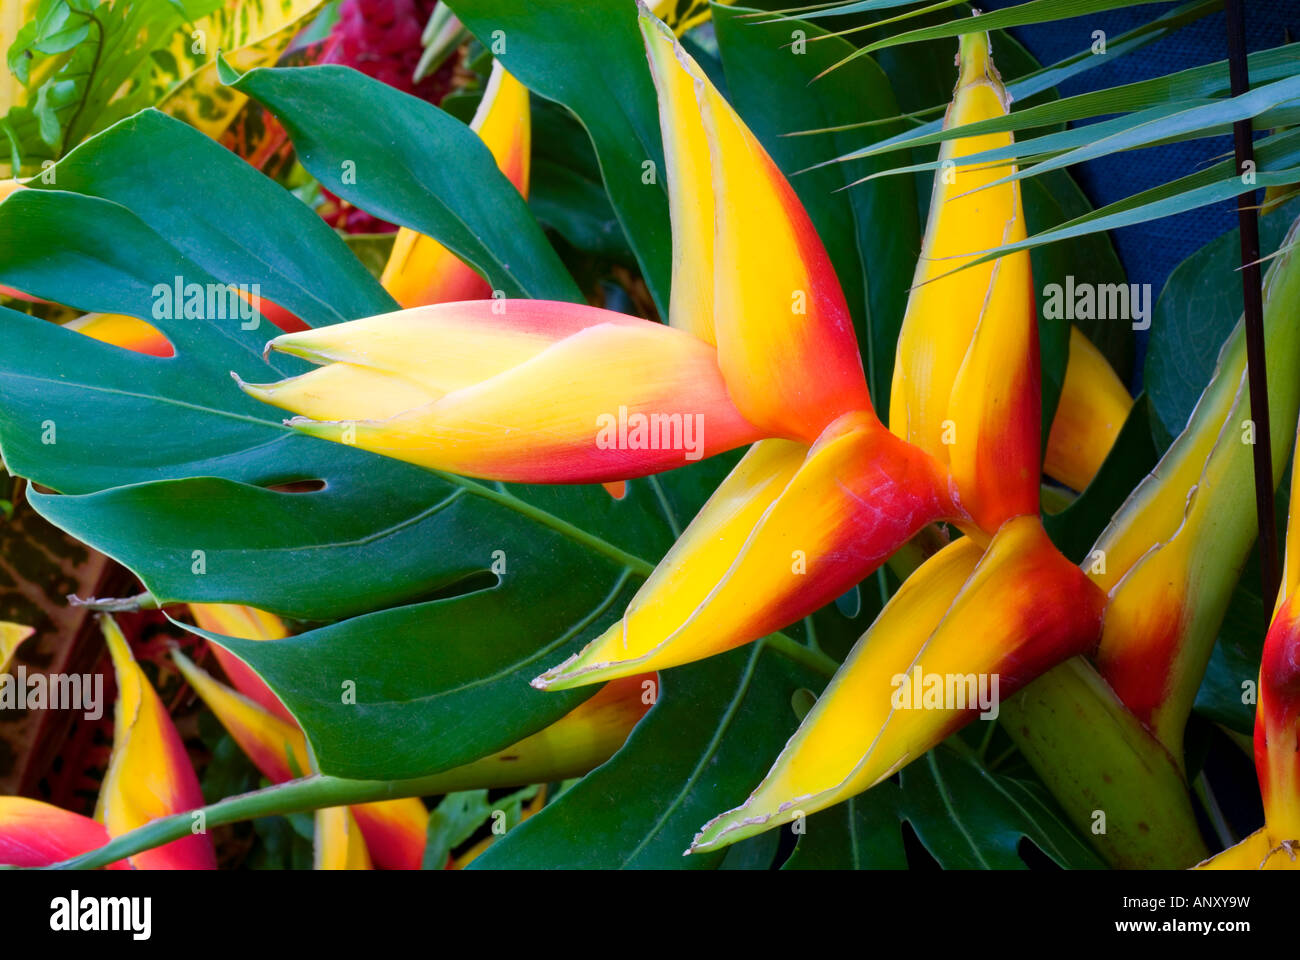 Heliconia Natural Hybrid In Grenada Exotic Tropical Flowers With